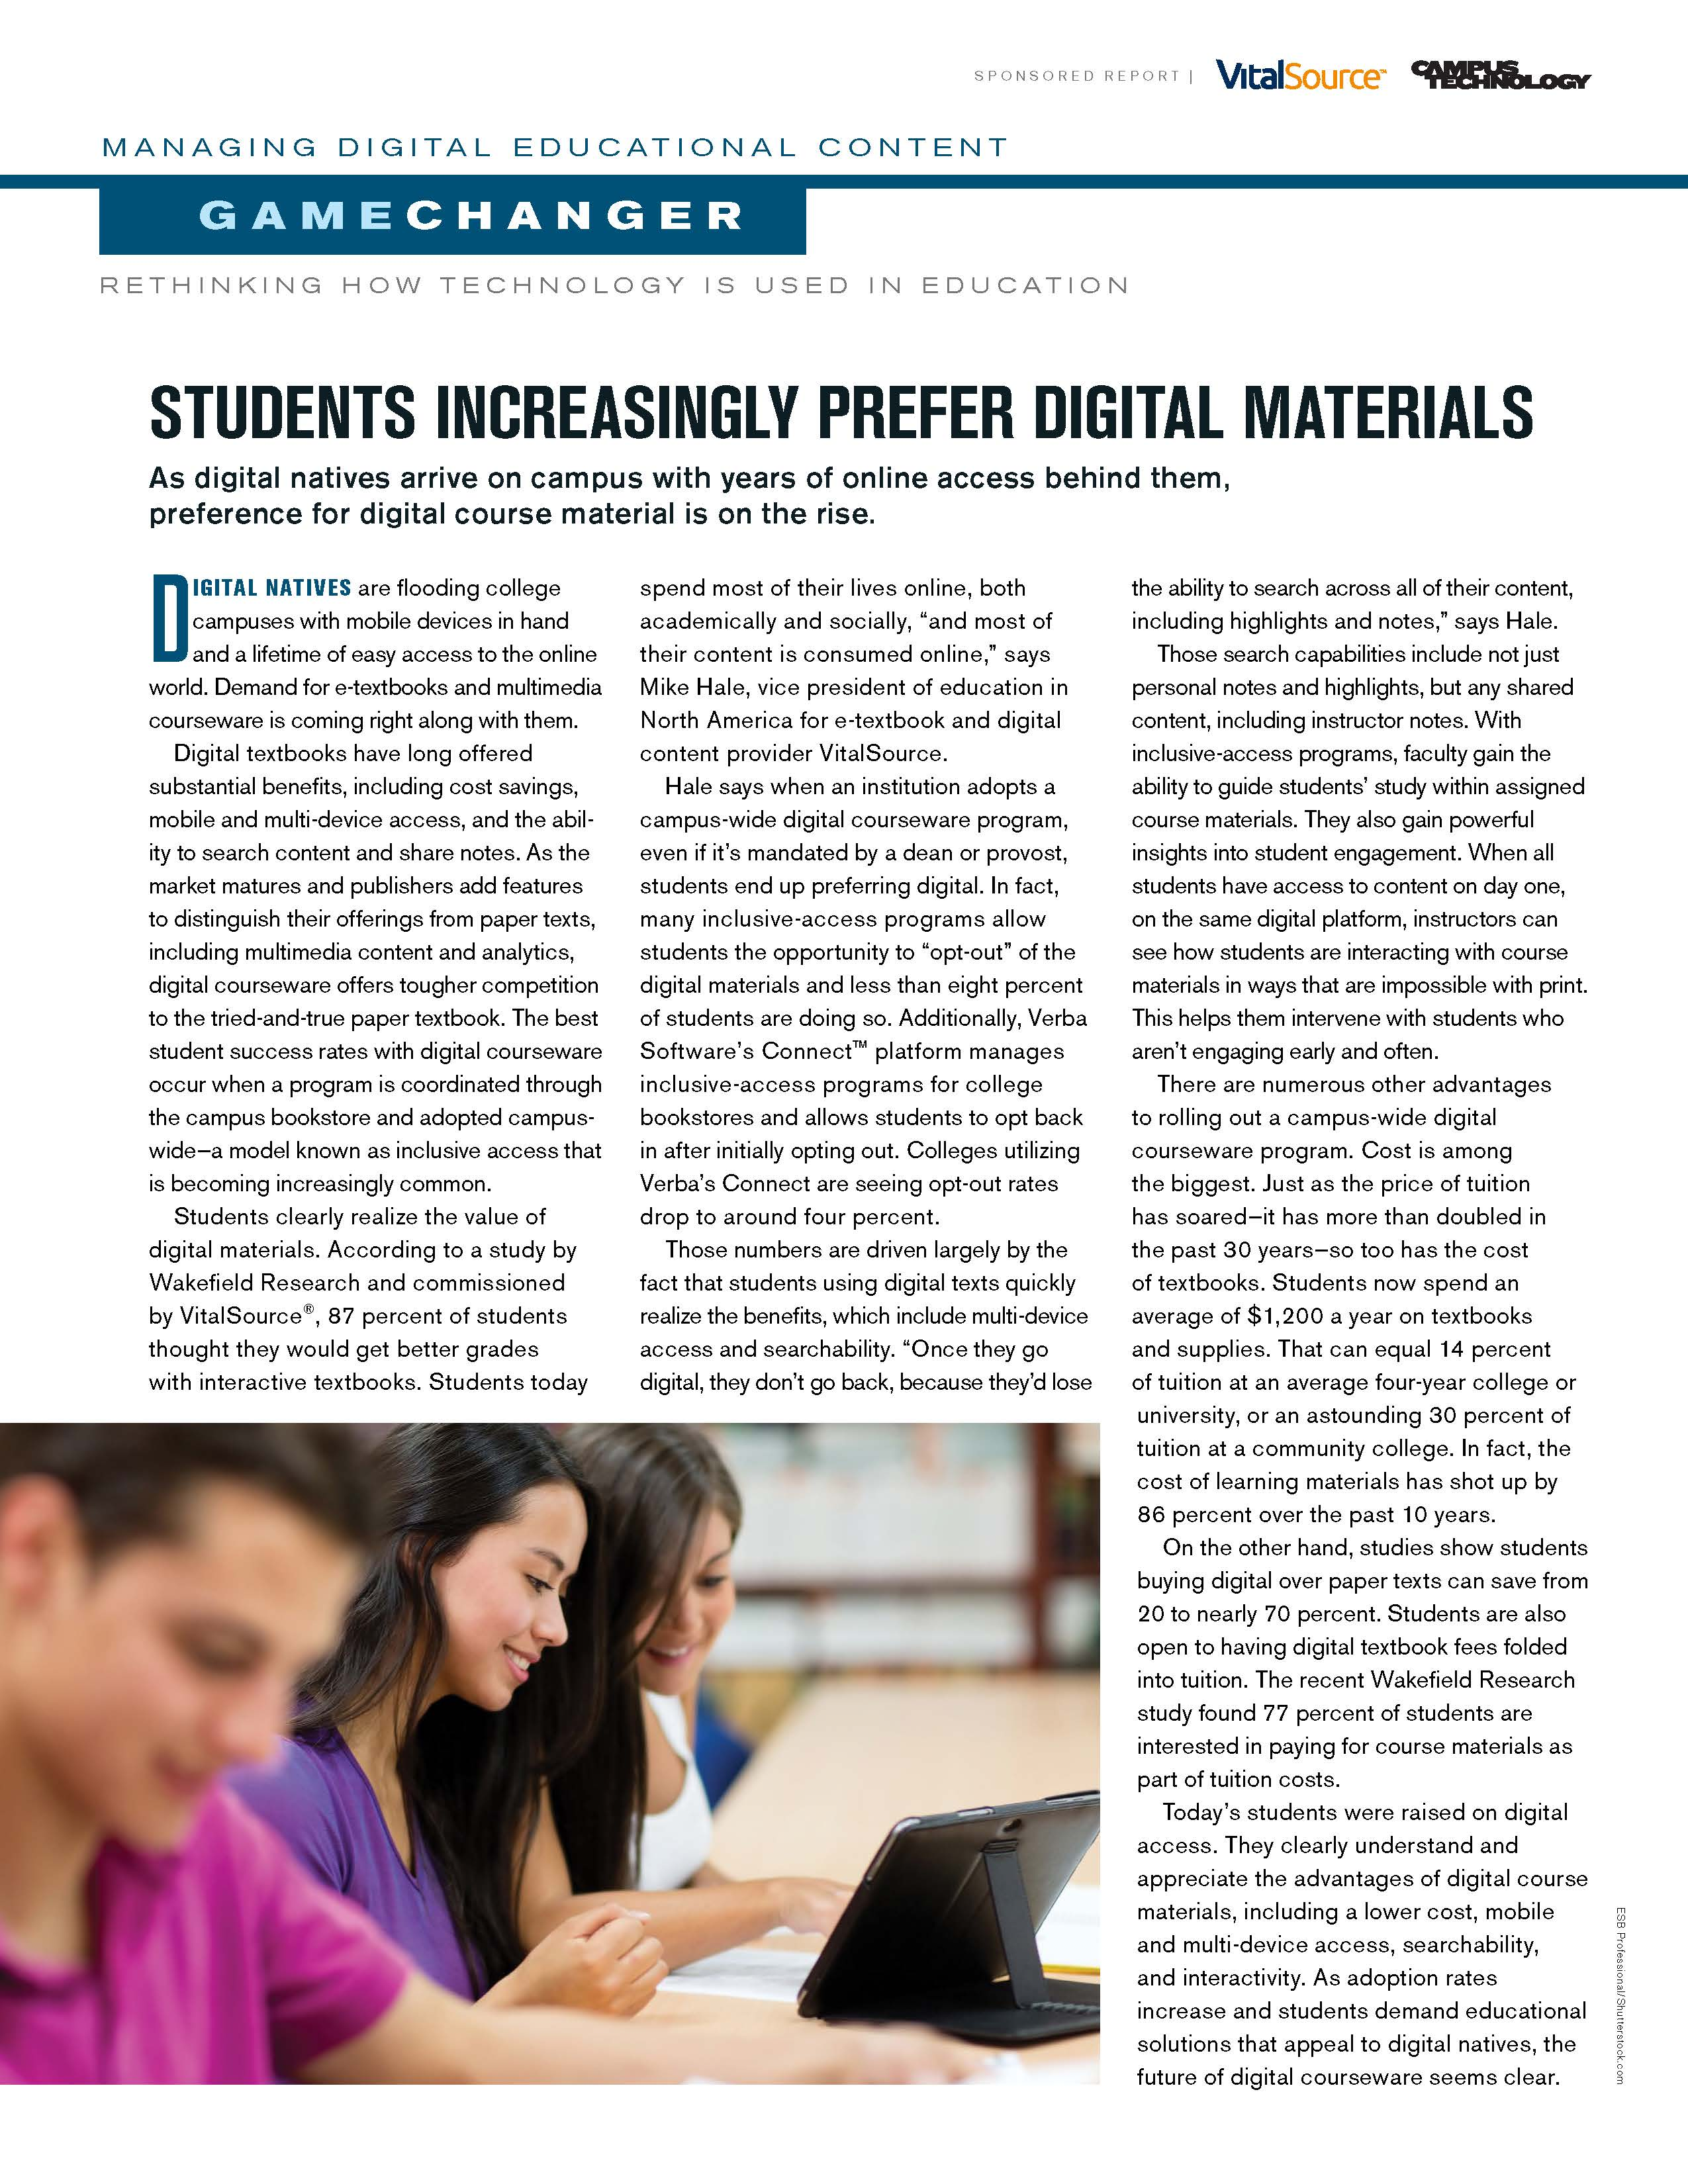 Rethinking How Technology is Used in Education Report